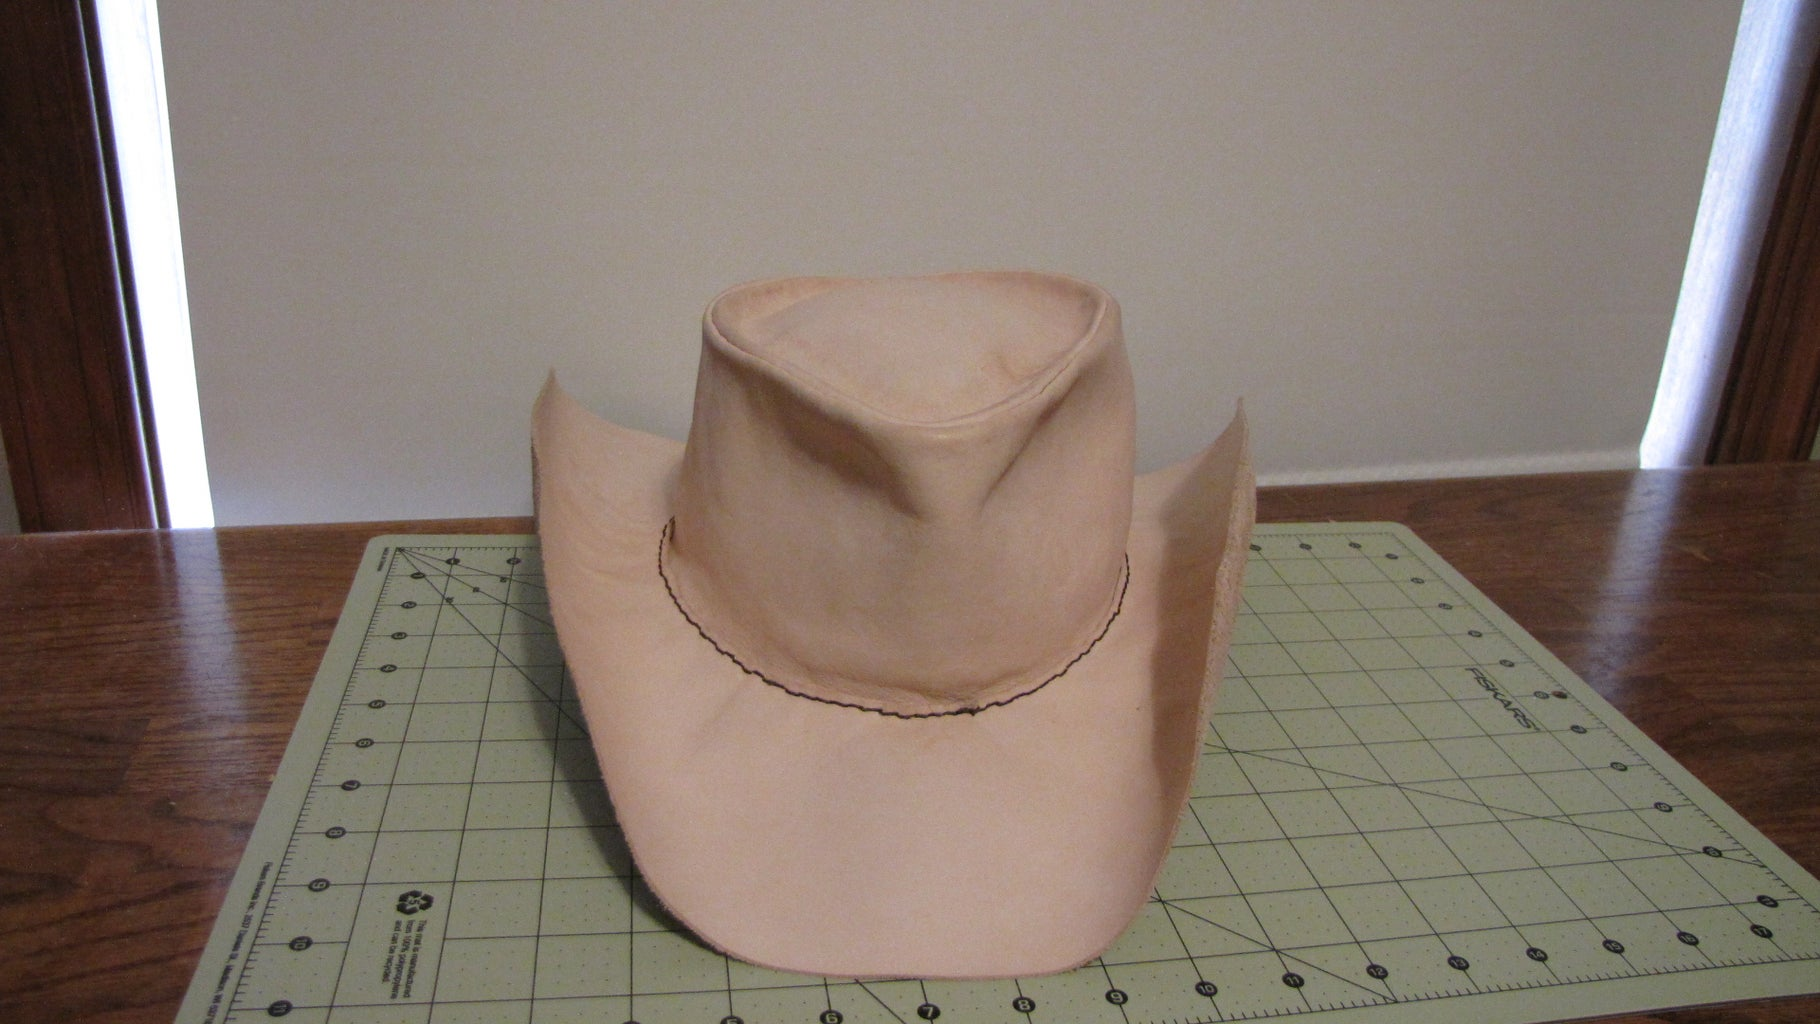 Stitching the Top of the Hat to the Brim